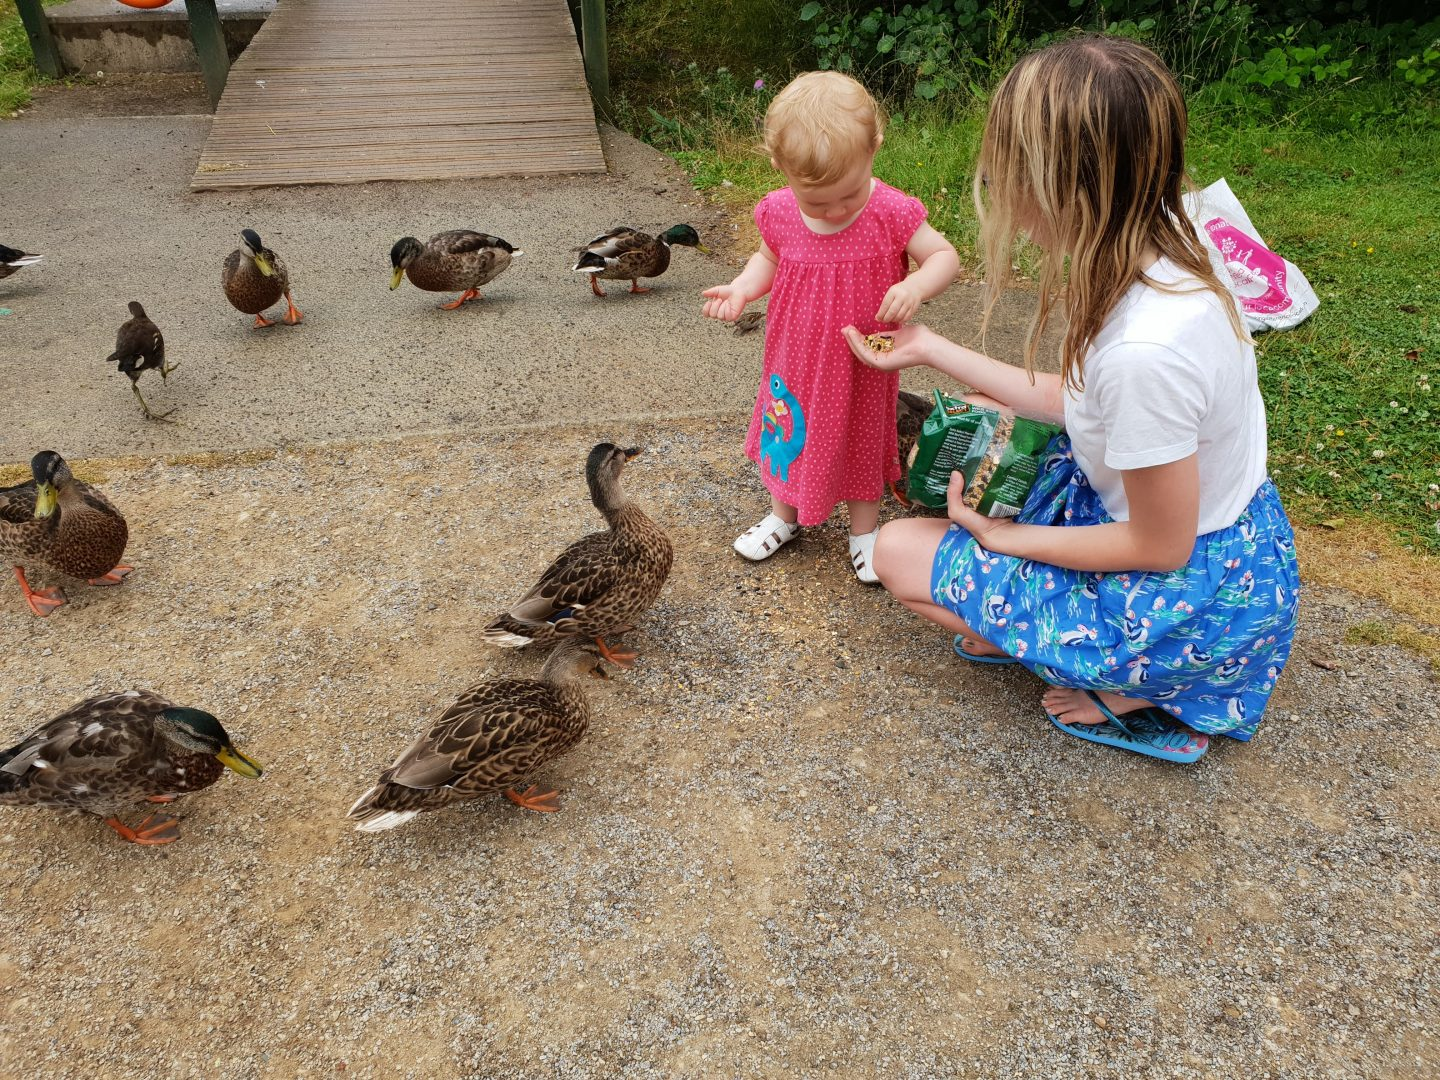 Feeding the ducks at Bluestone, Wales